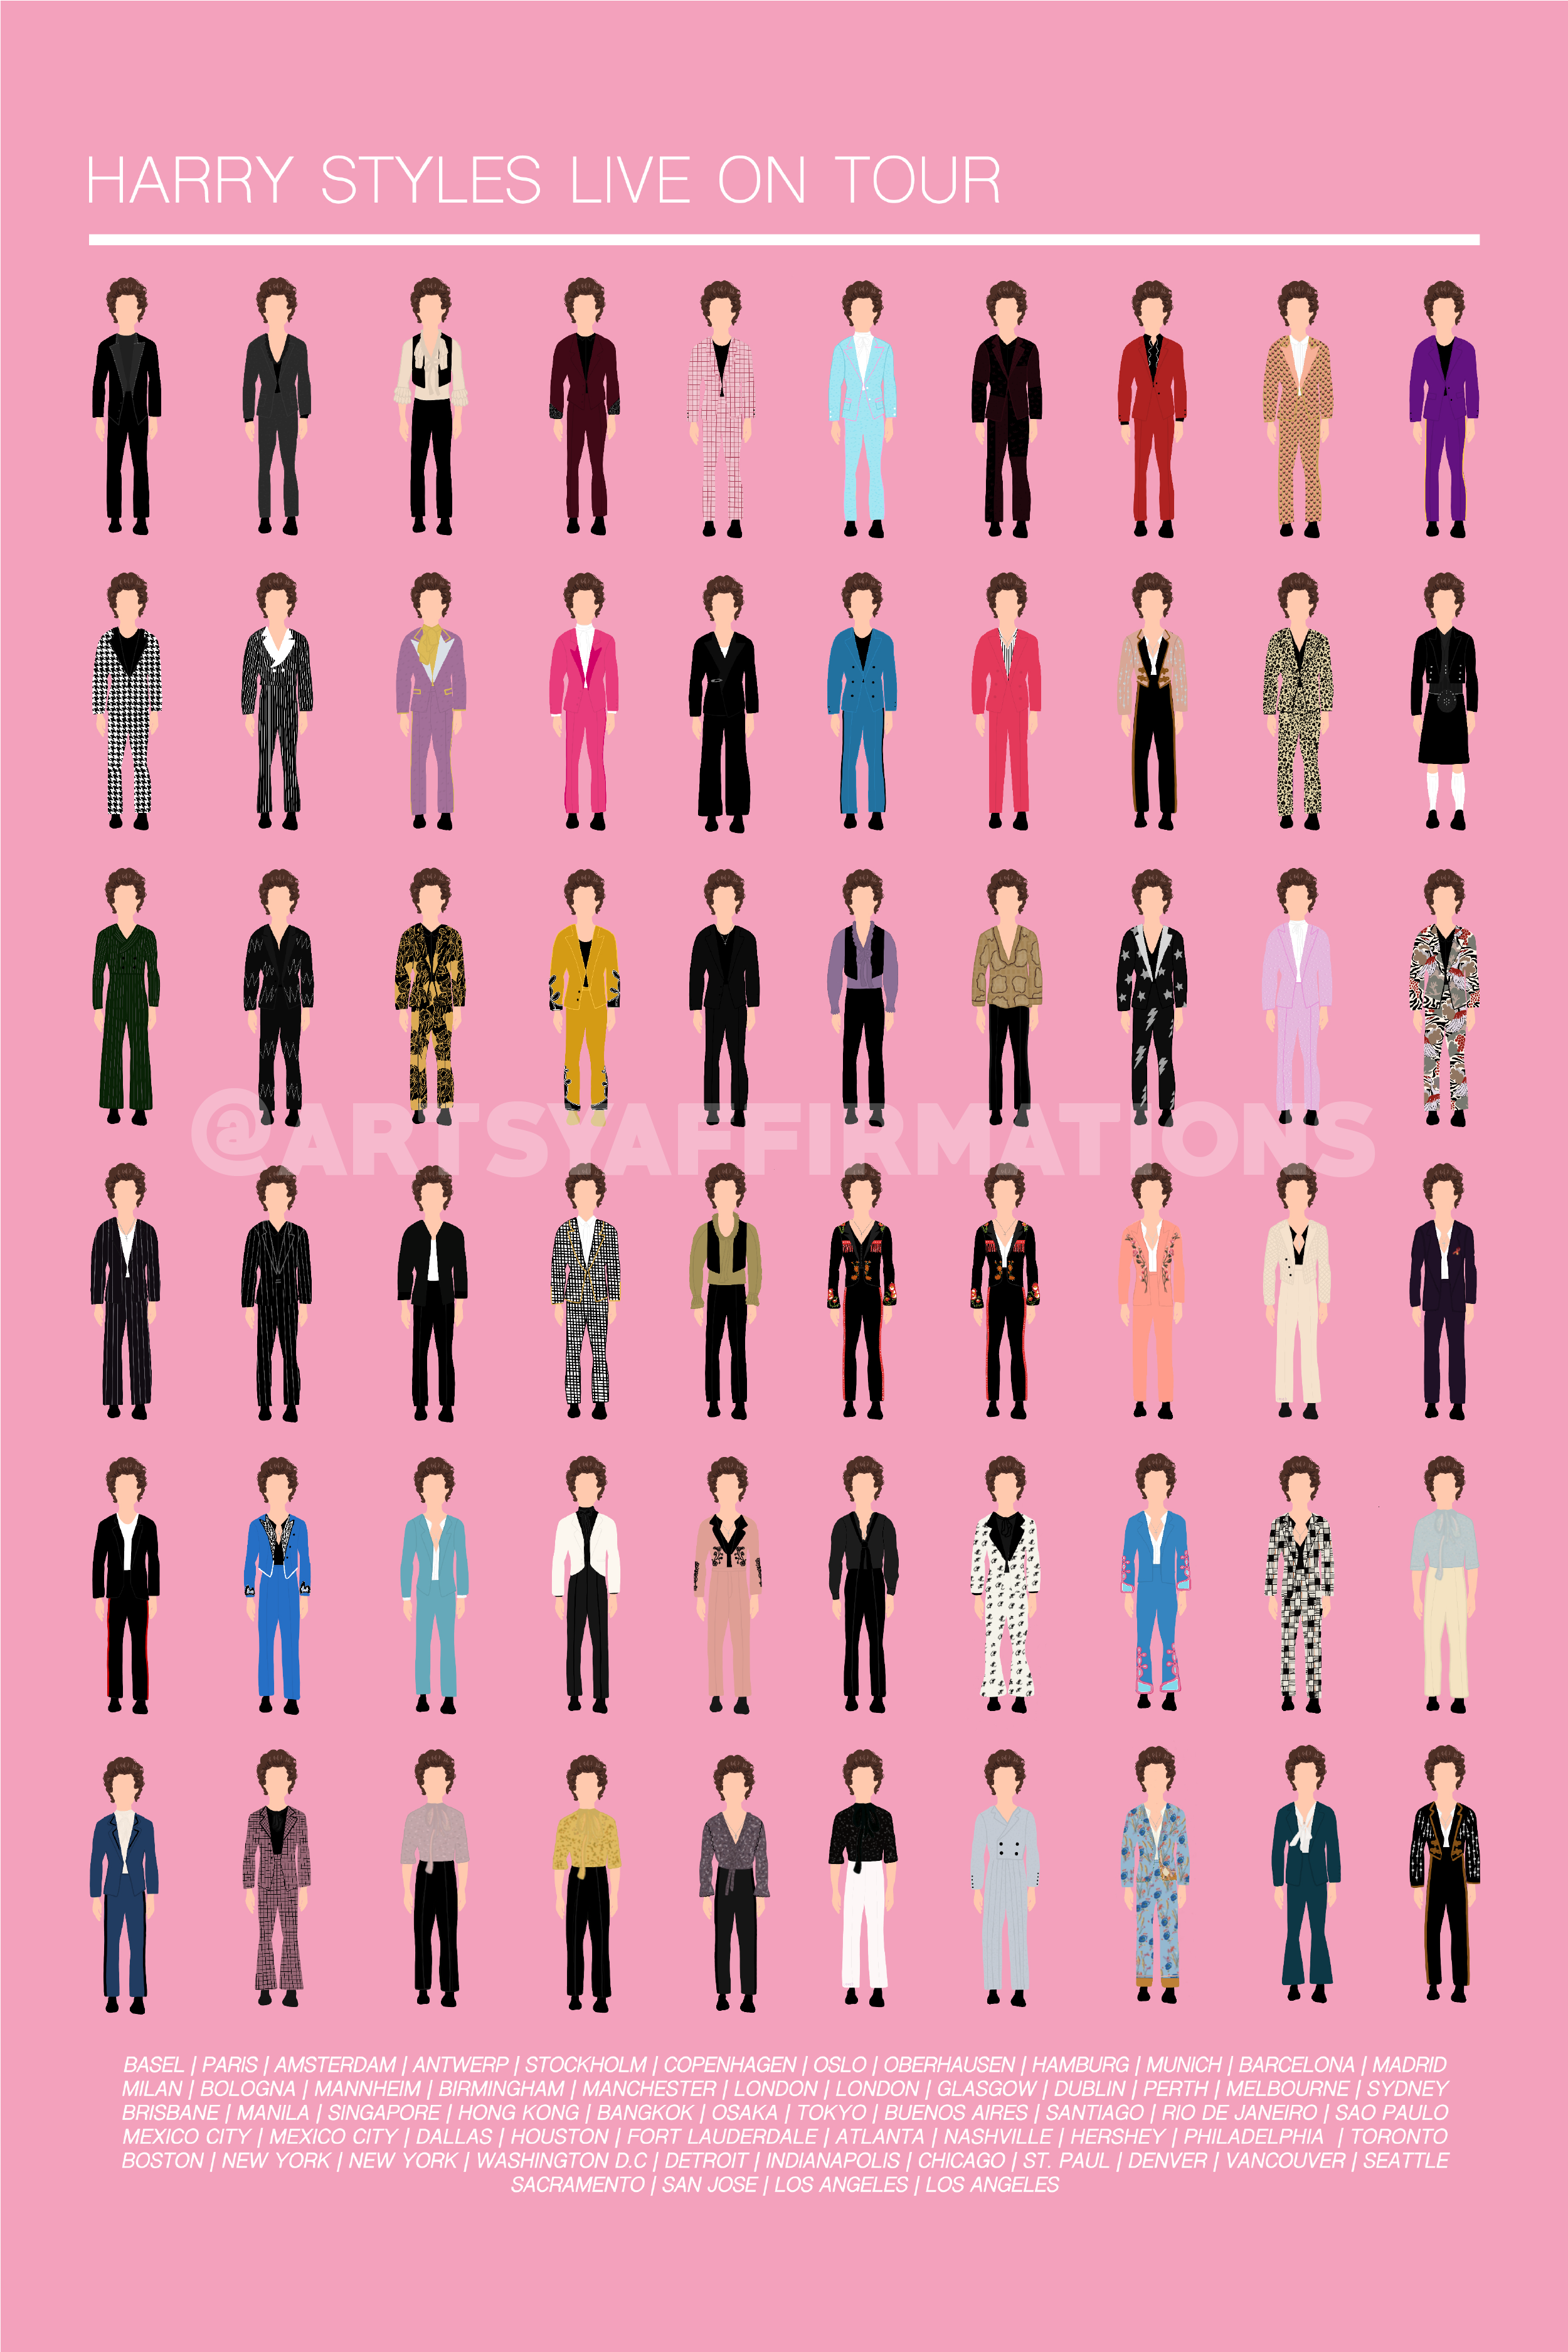 harry styles live on tour outfits